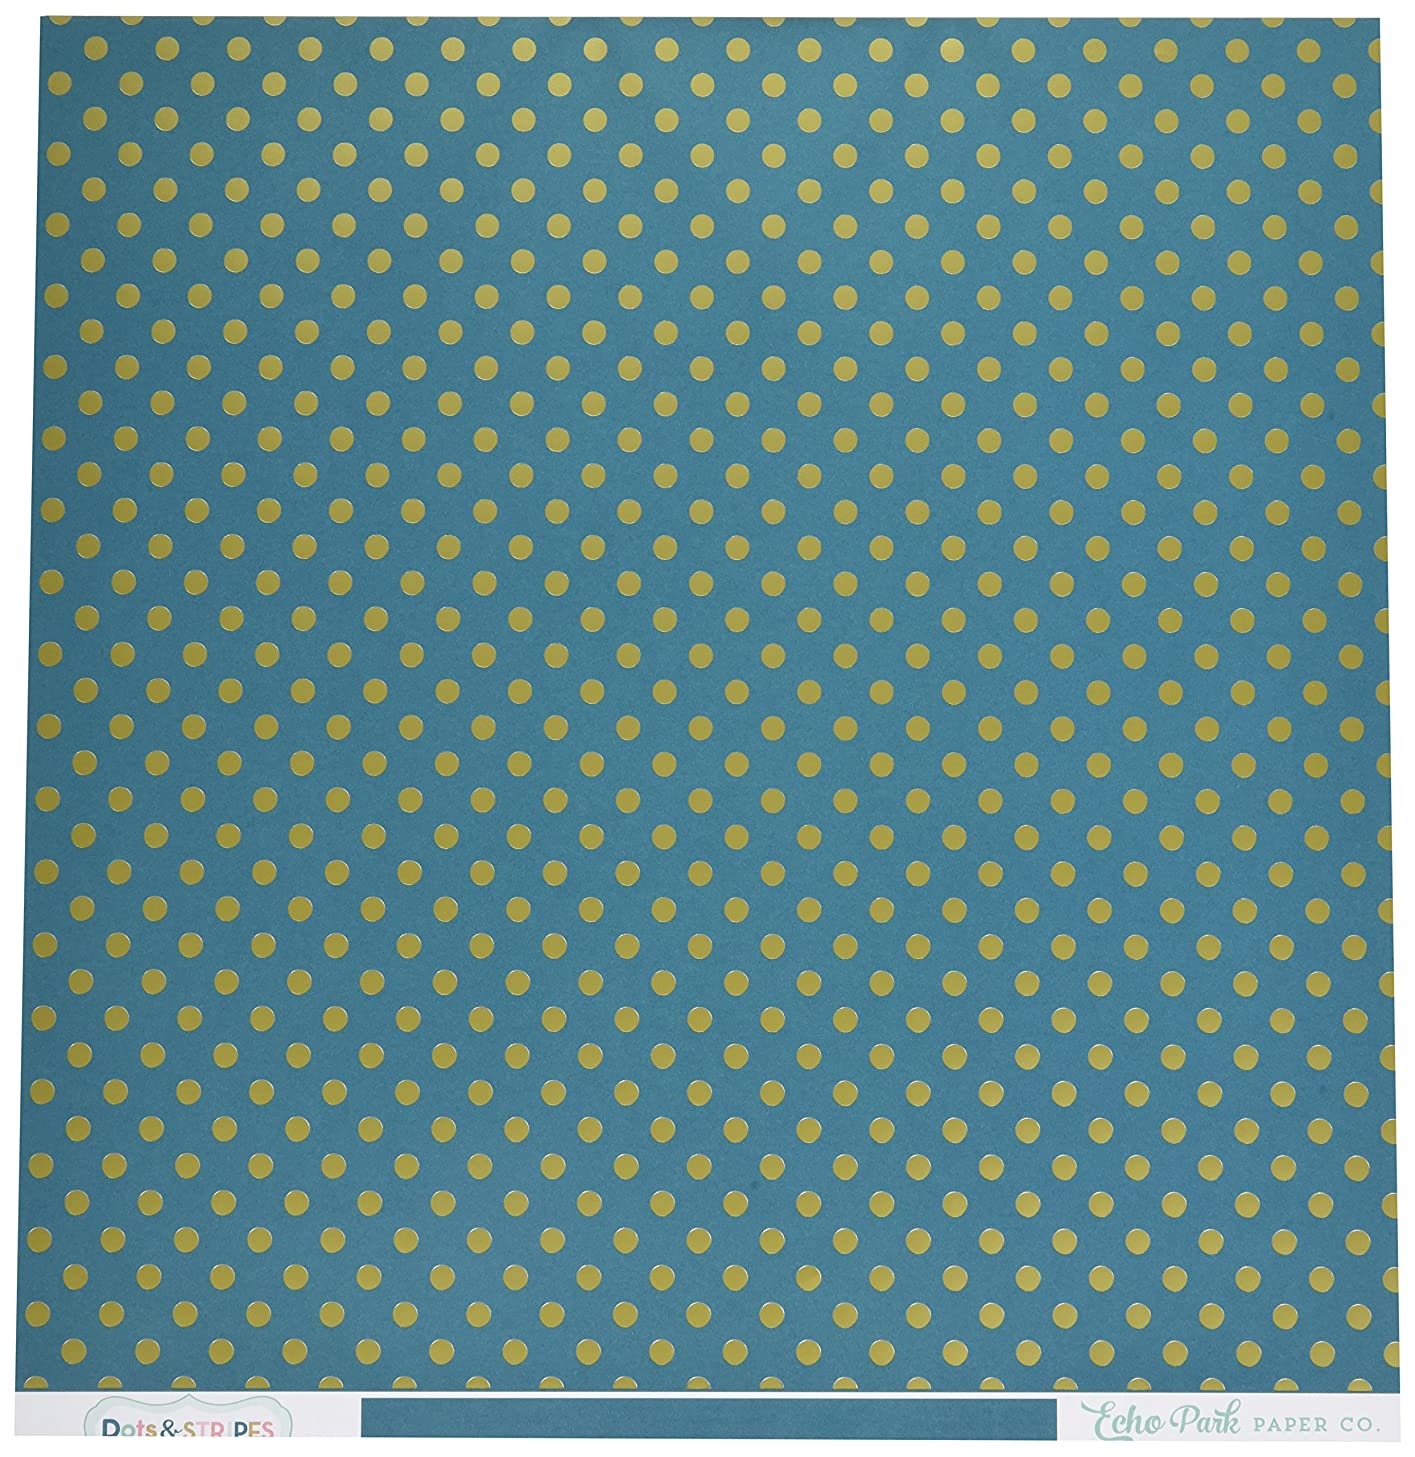 Echo Park Paper DS16004 Foiled Dots & Stripes Cardstock (15 Sheets Per Pack), 12